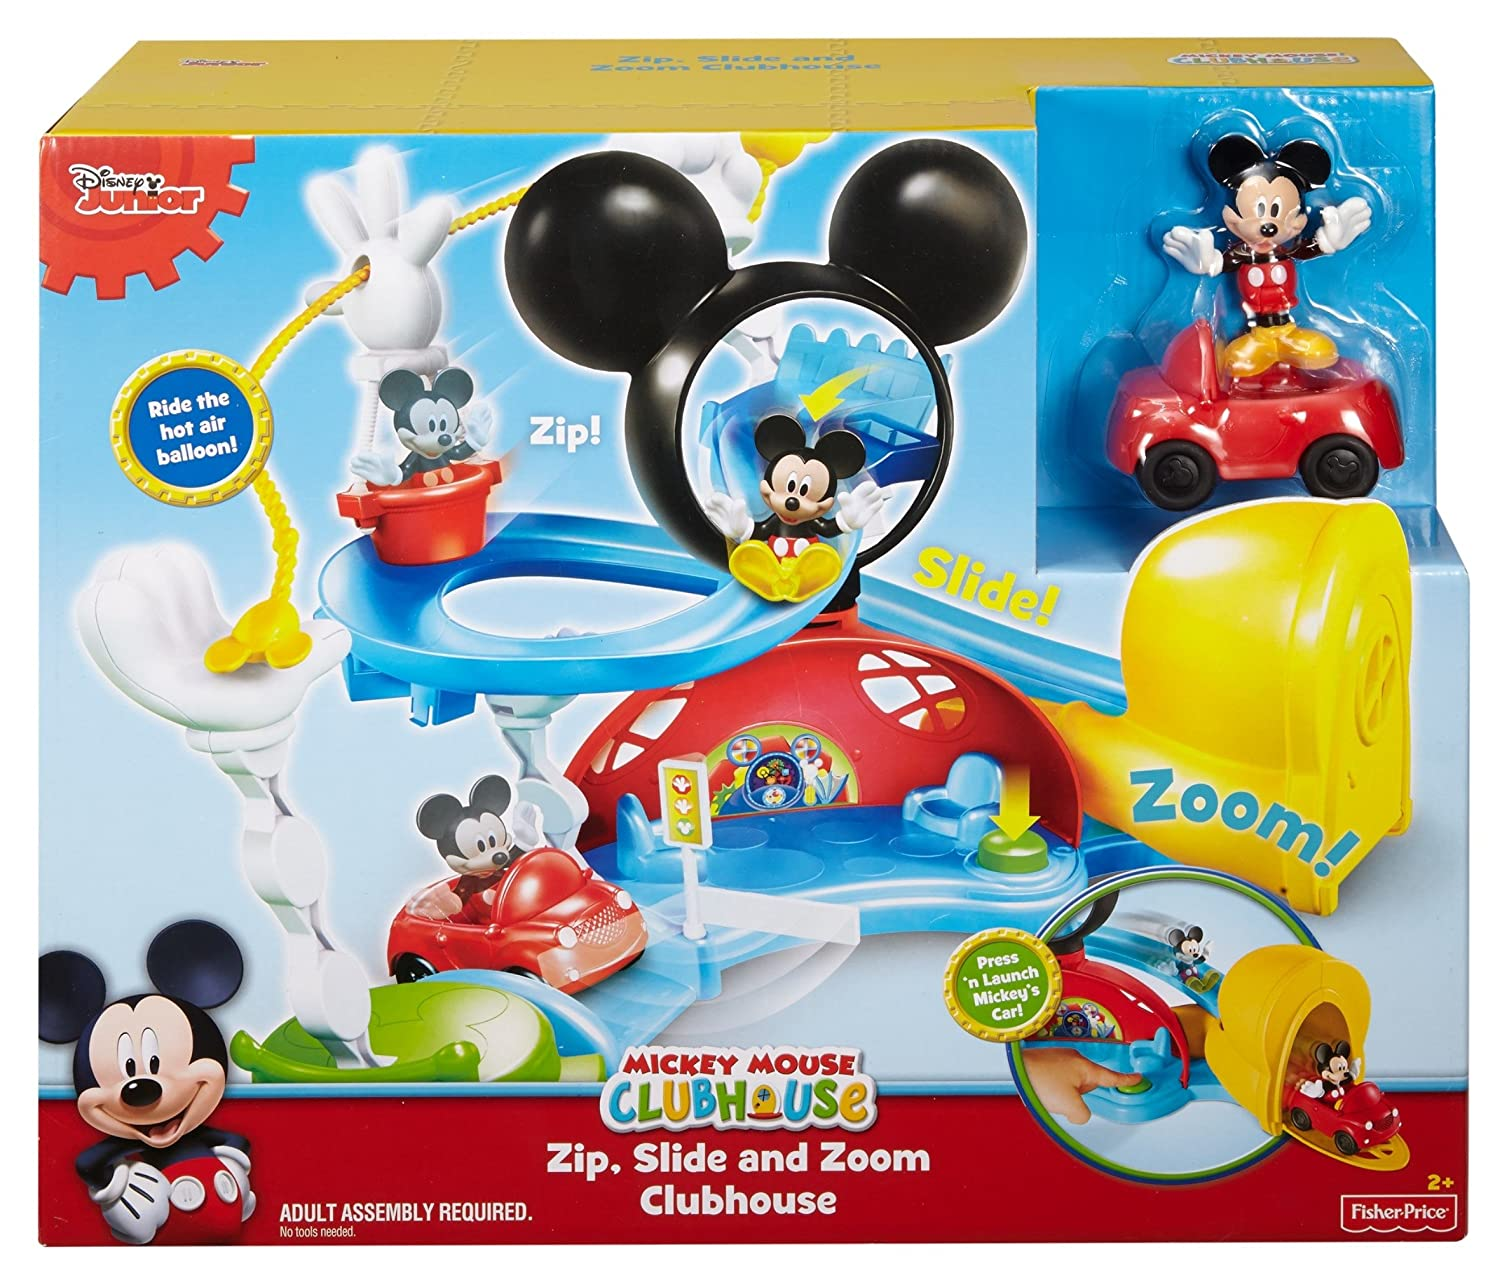 Amazon.com: Fisher-Price Disney Junior Mickey Mouse Clubhouse Zip ...